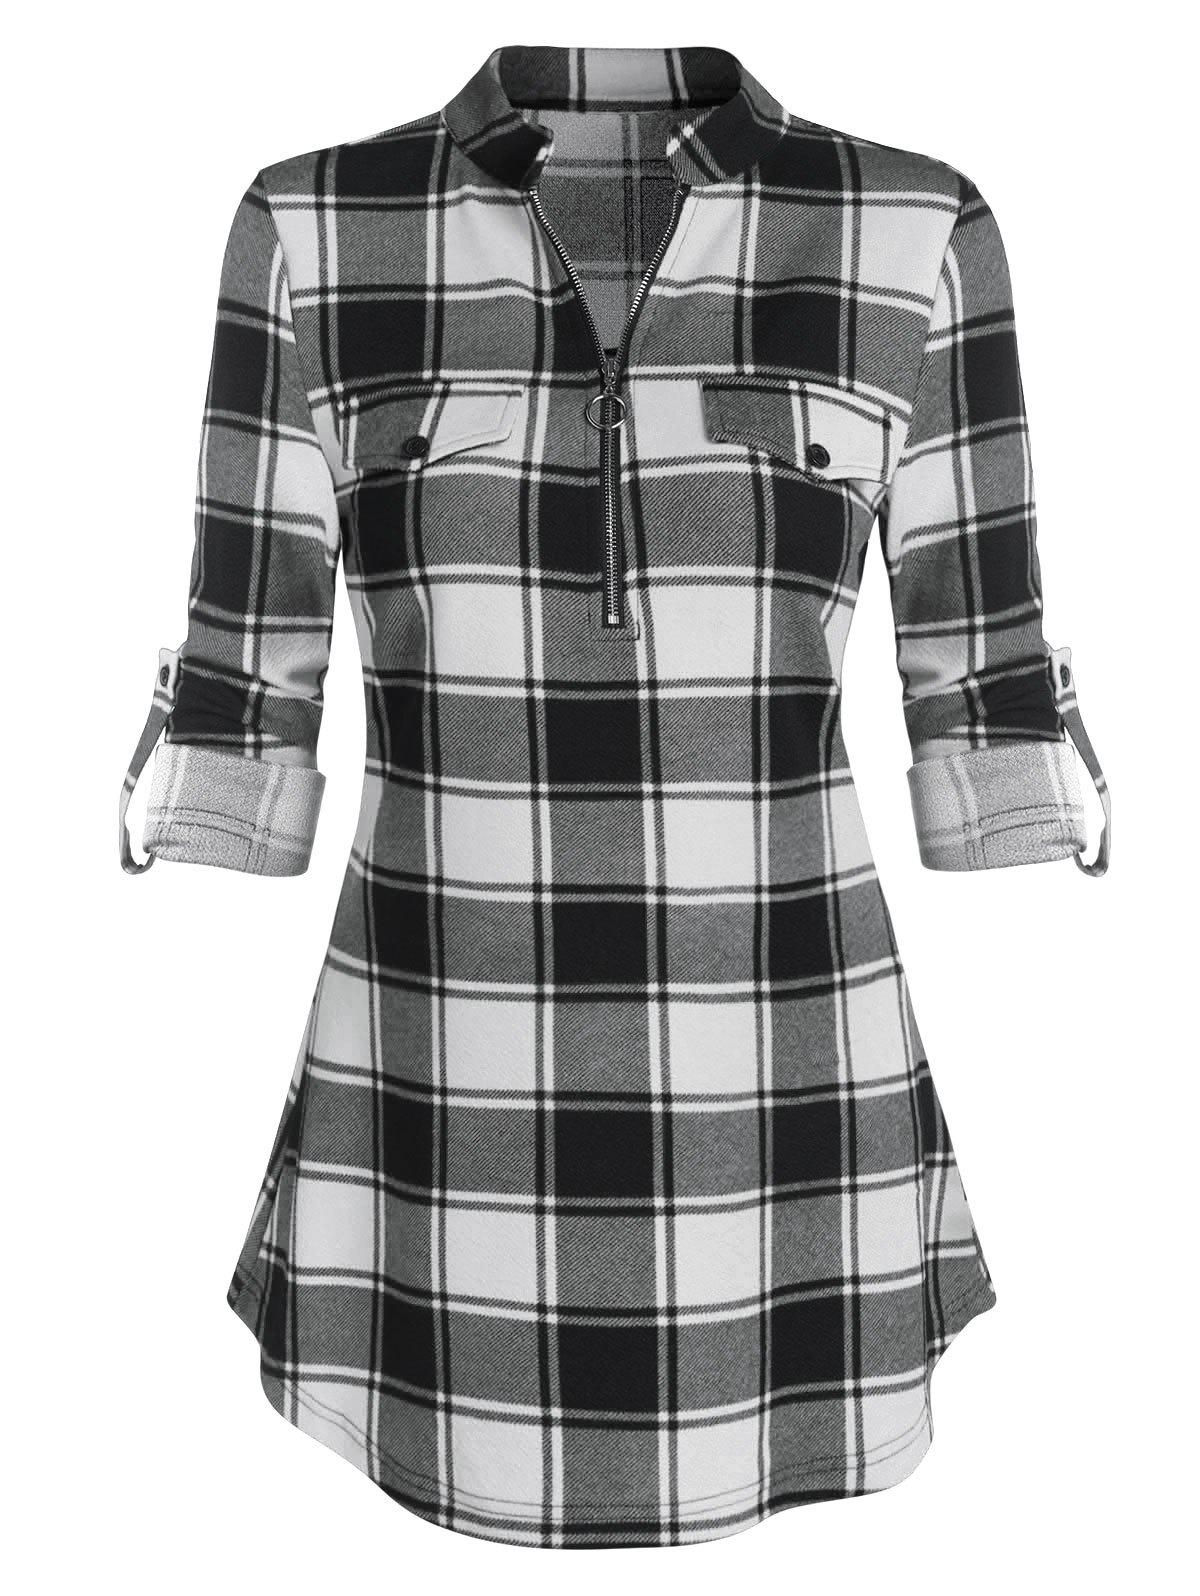 Plaid Print Cuffed Sleeve Half Zip Blouse - BLACK 3XL